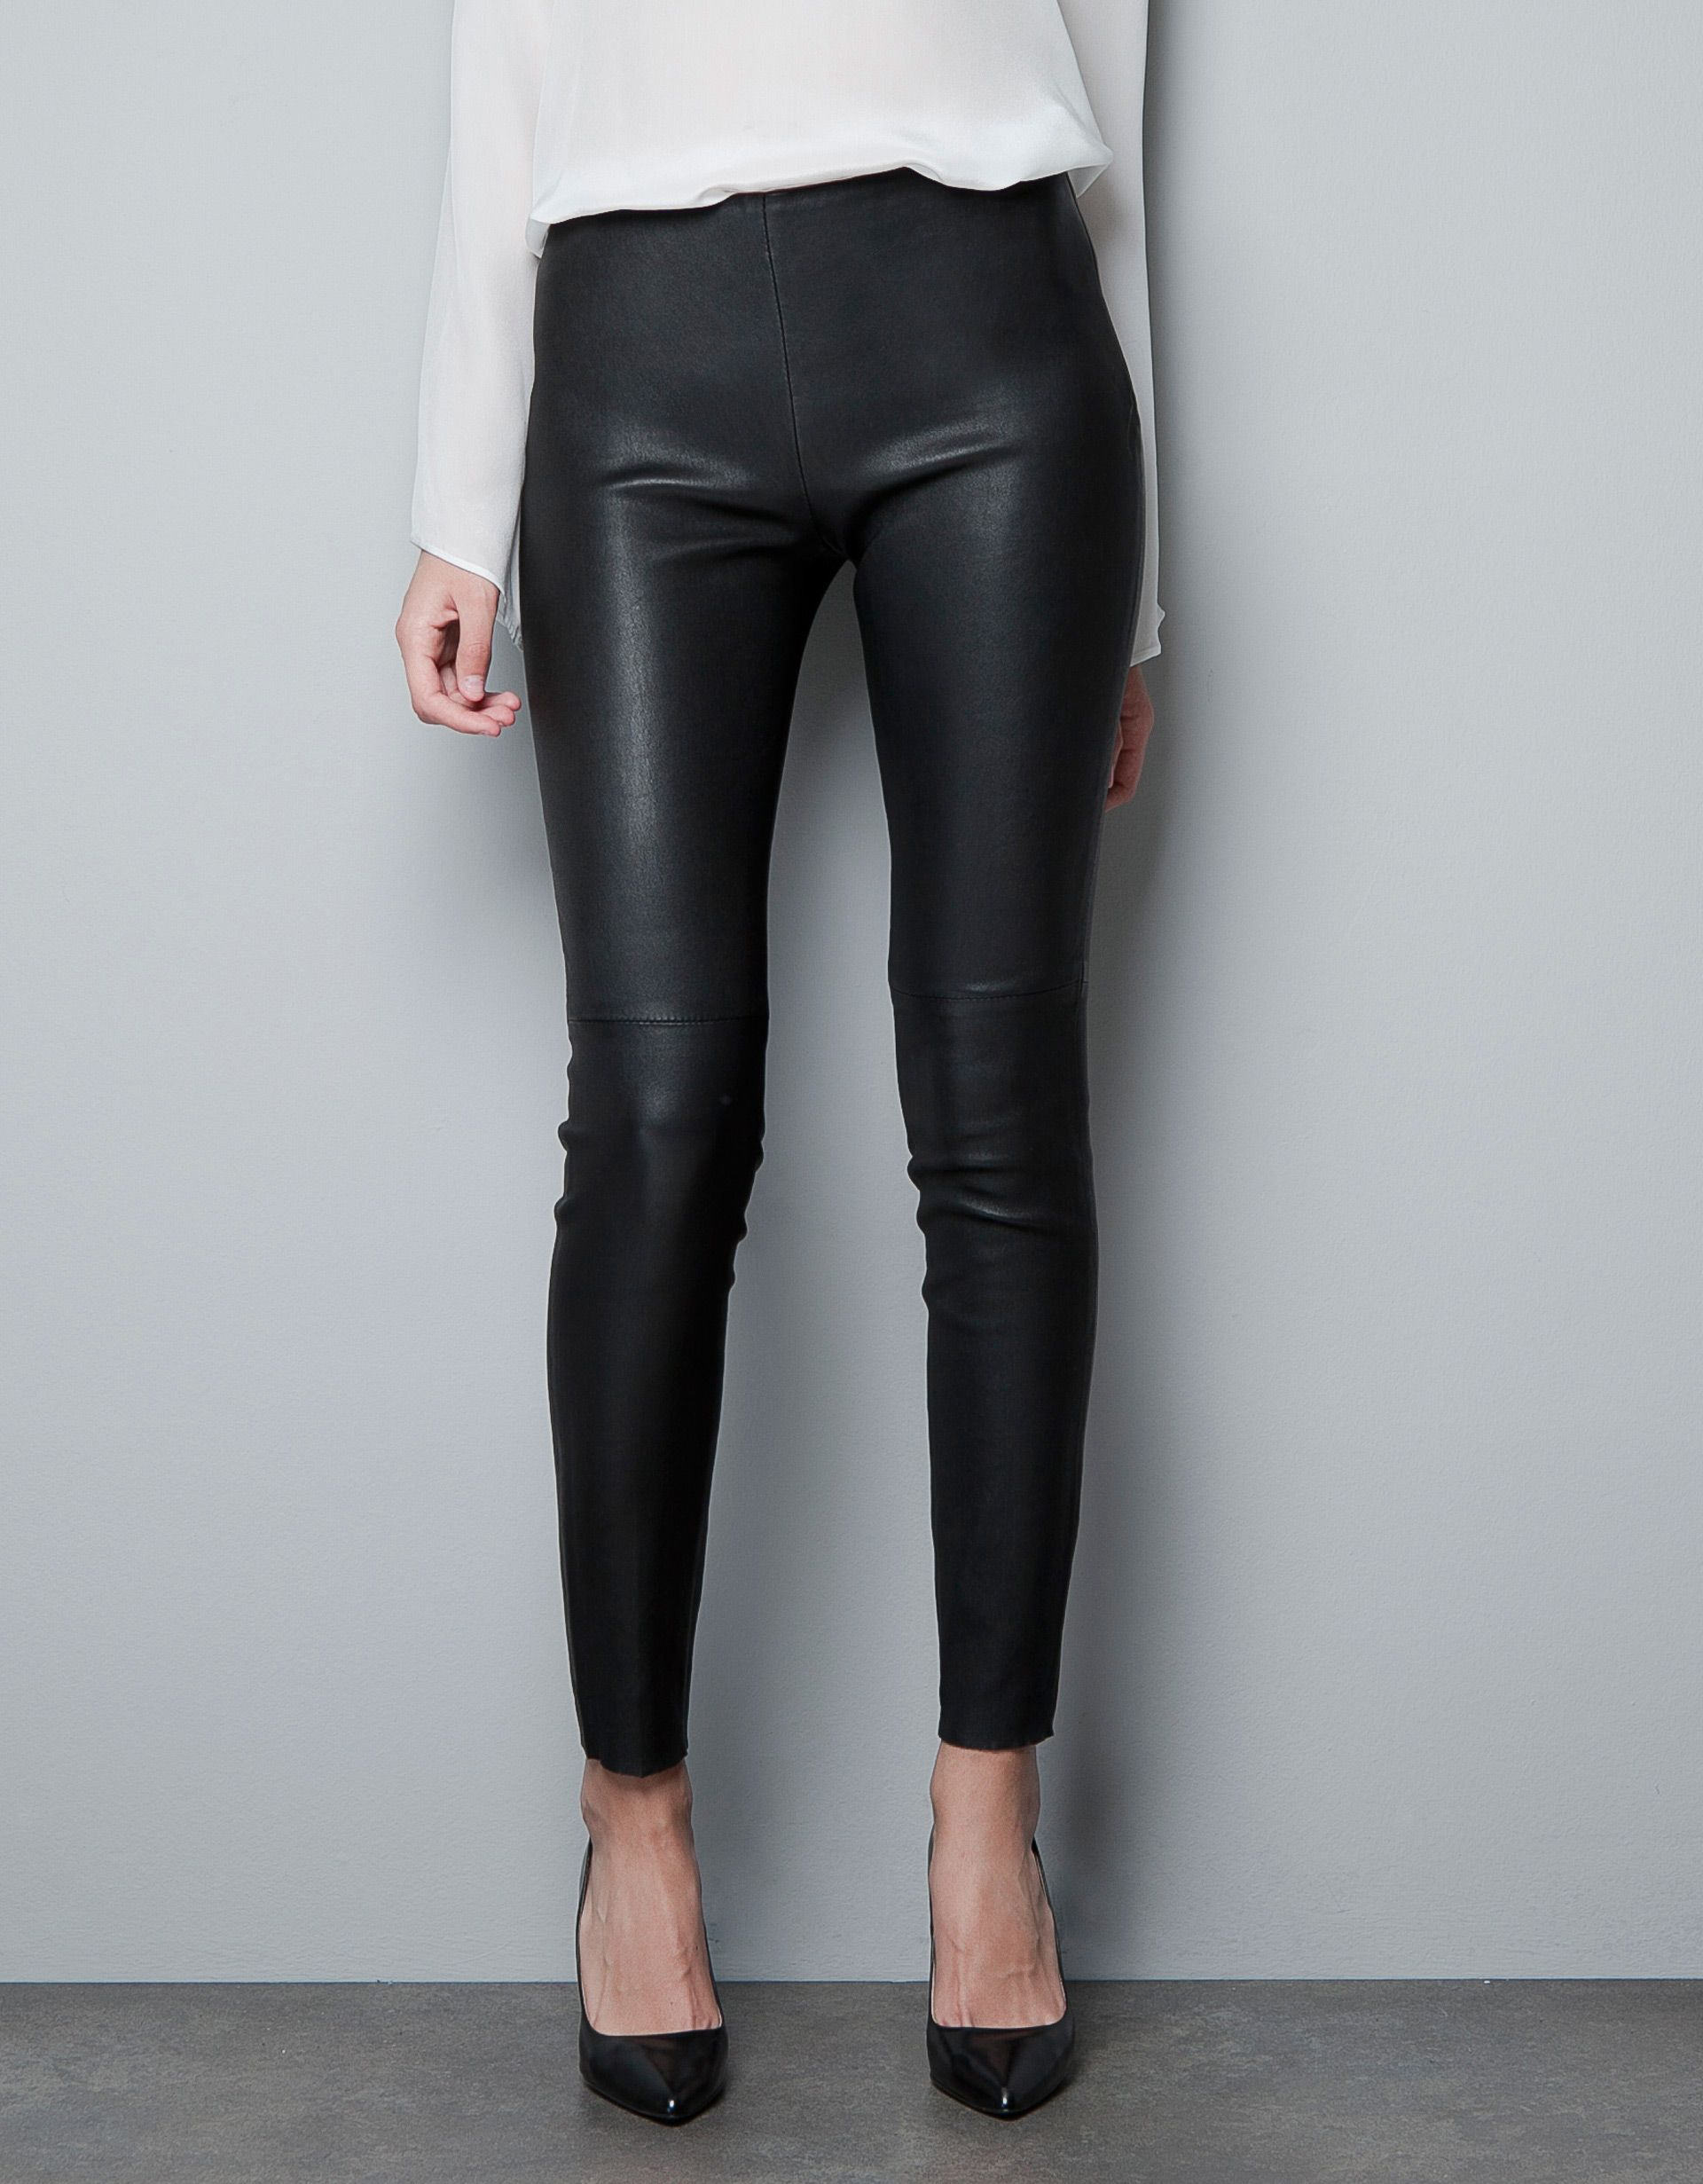 19ab0543 Zara stretch leather trousers | Fashionista Musings in 2019 | Faux ...